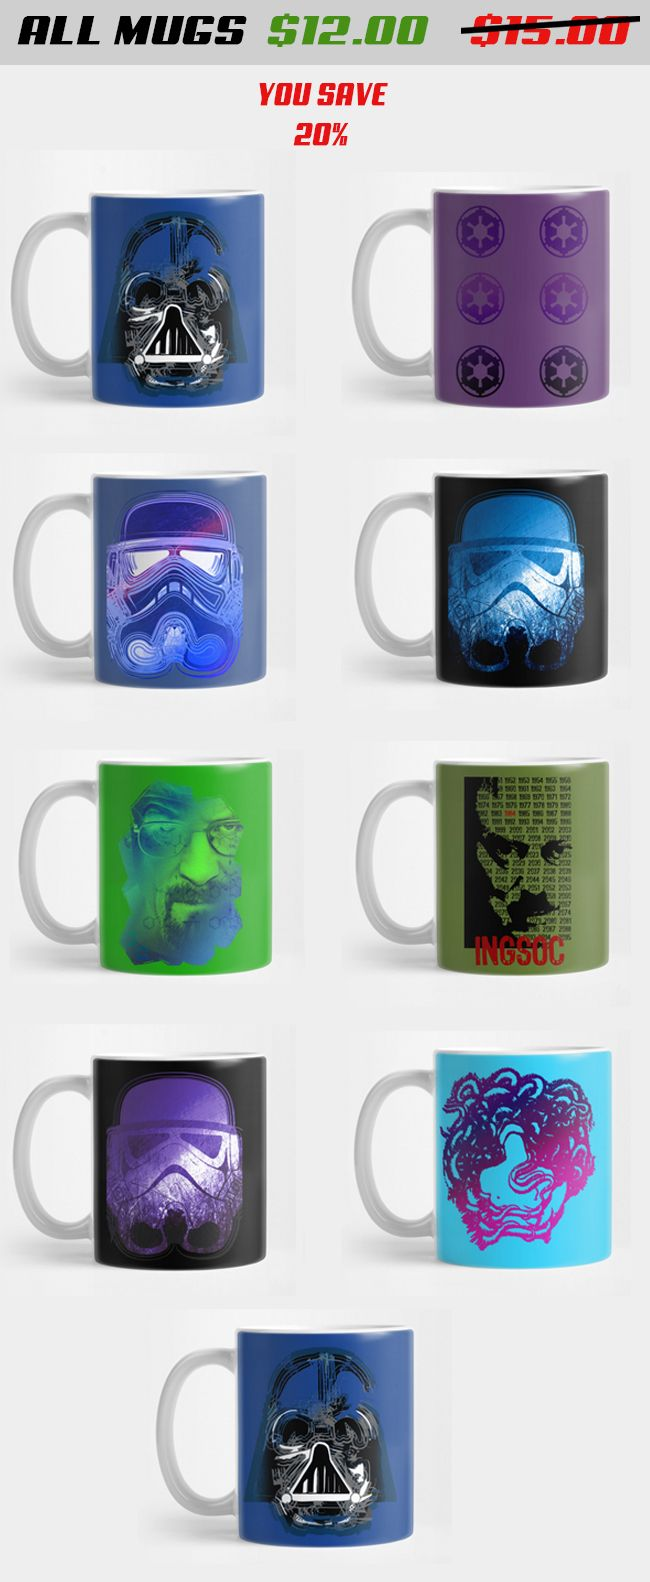 ALL MUG $12.00 !!!  #teepublic #fall2016  #mugs #coffeemugs #sales #discount #stormtroopermug #darthvadermug #moviegifts #cinemagifts #buymugs #coolmugs #geek #nerd #gifts  #starwarmug  #buycoolmug #octobersales #offer #giftsforhim #giftsforkids #starwargifts  #coffeemug #swag #style #mensgifts #badass #kidsmug #home #homegifts #kidsgifts #giftsforhim #giftsforher